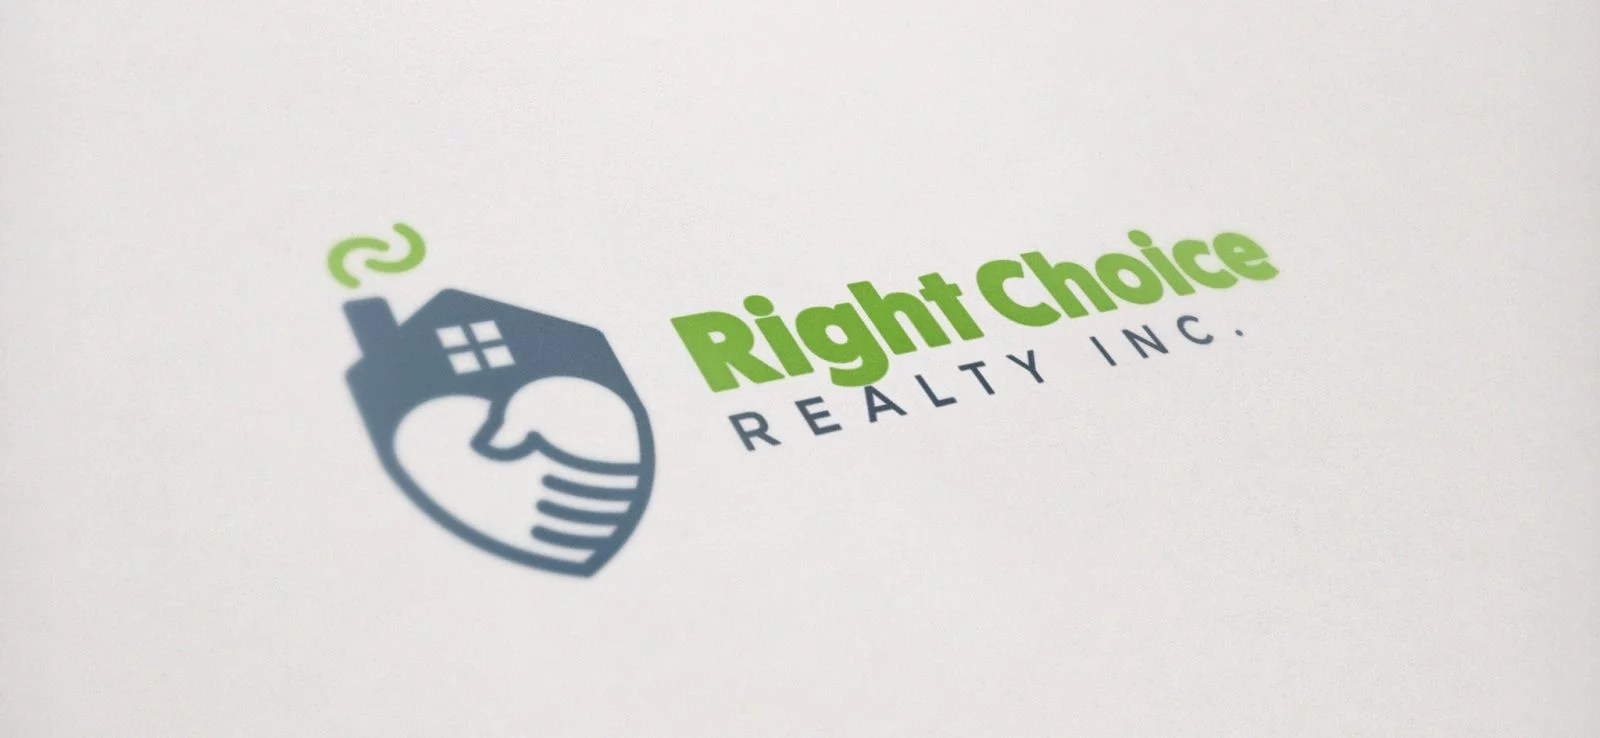 Right Choice Realty - Logo Design - Lethbridge, AB